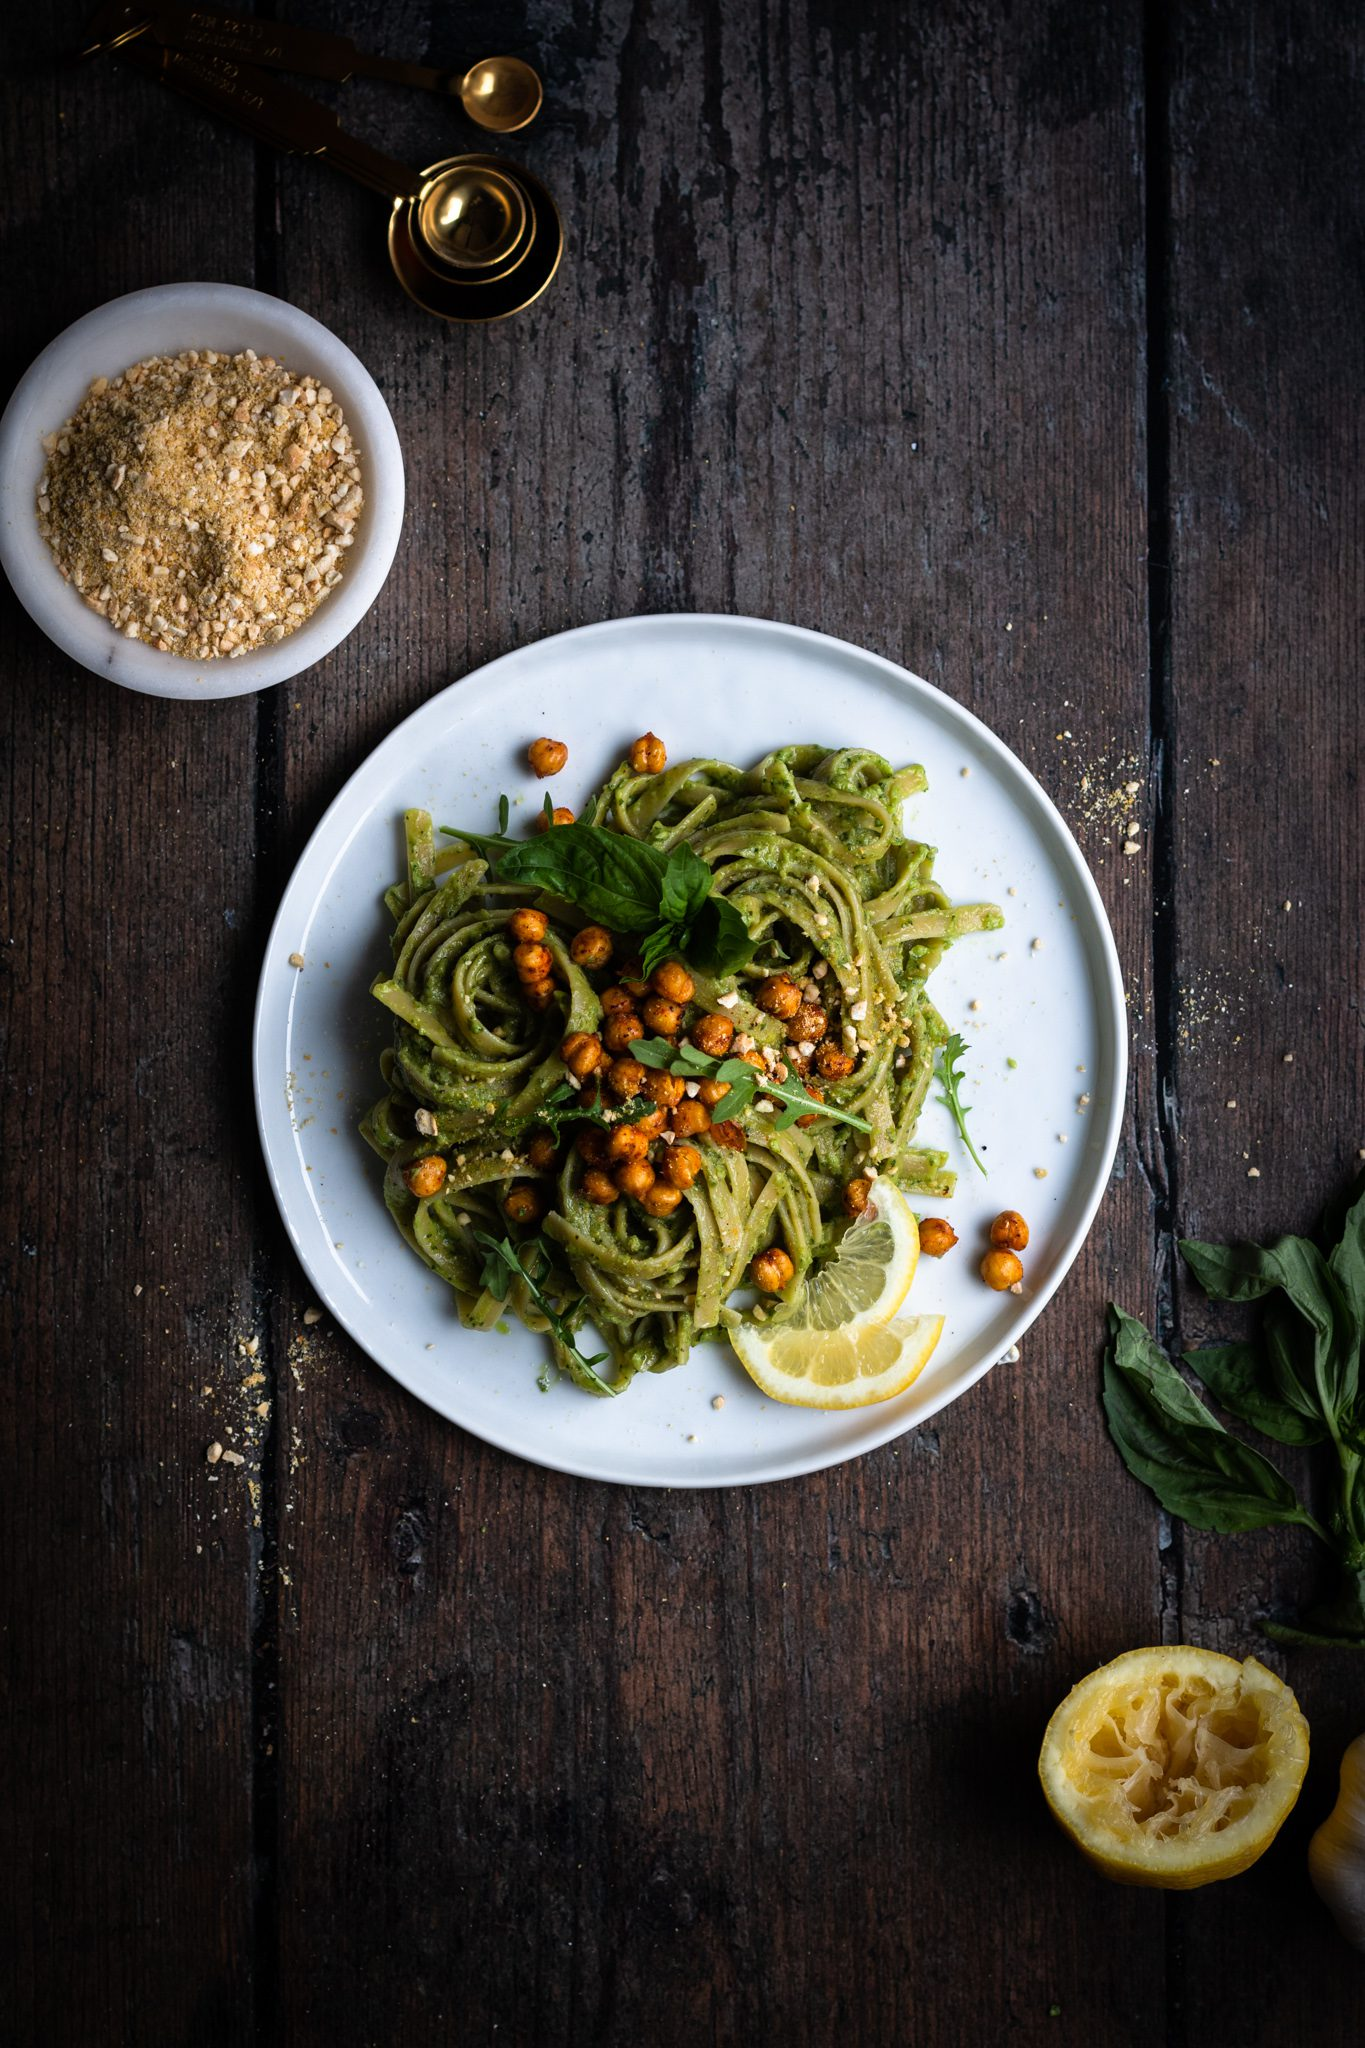 pesto pasta with chickpeas on a plate